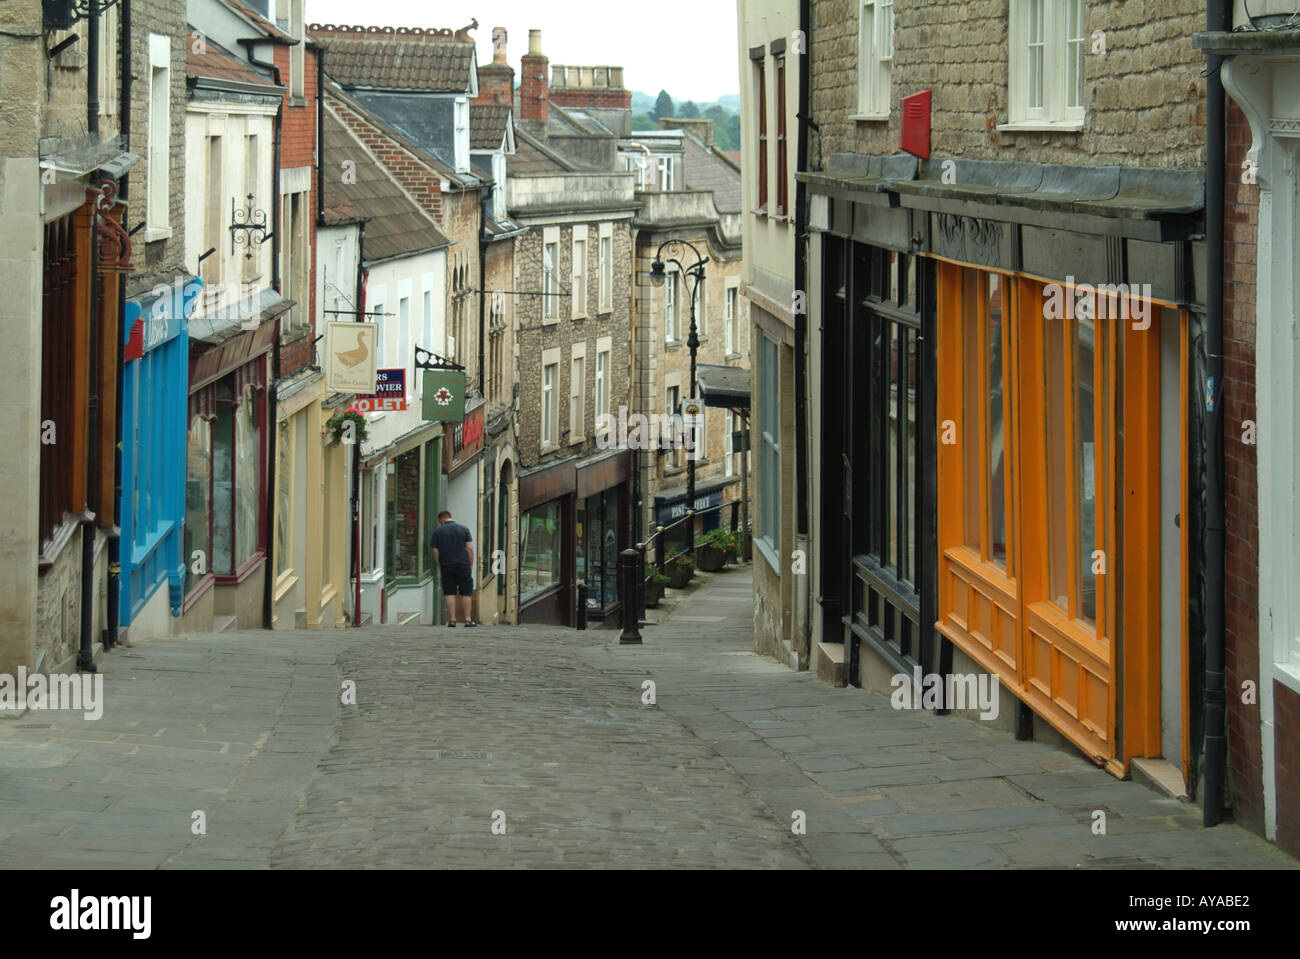 Frome one of a number of quaint narrow hilly side streets which house a selection of small shops and eating venues Stock Photo